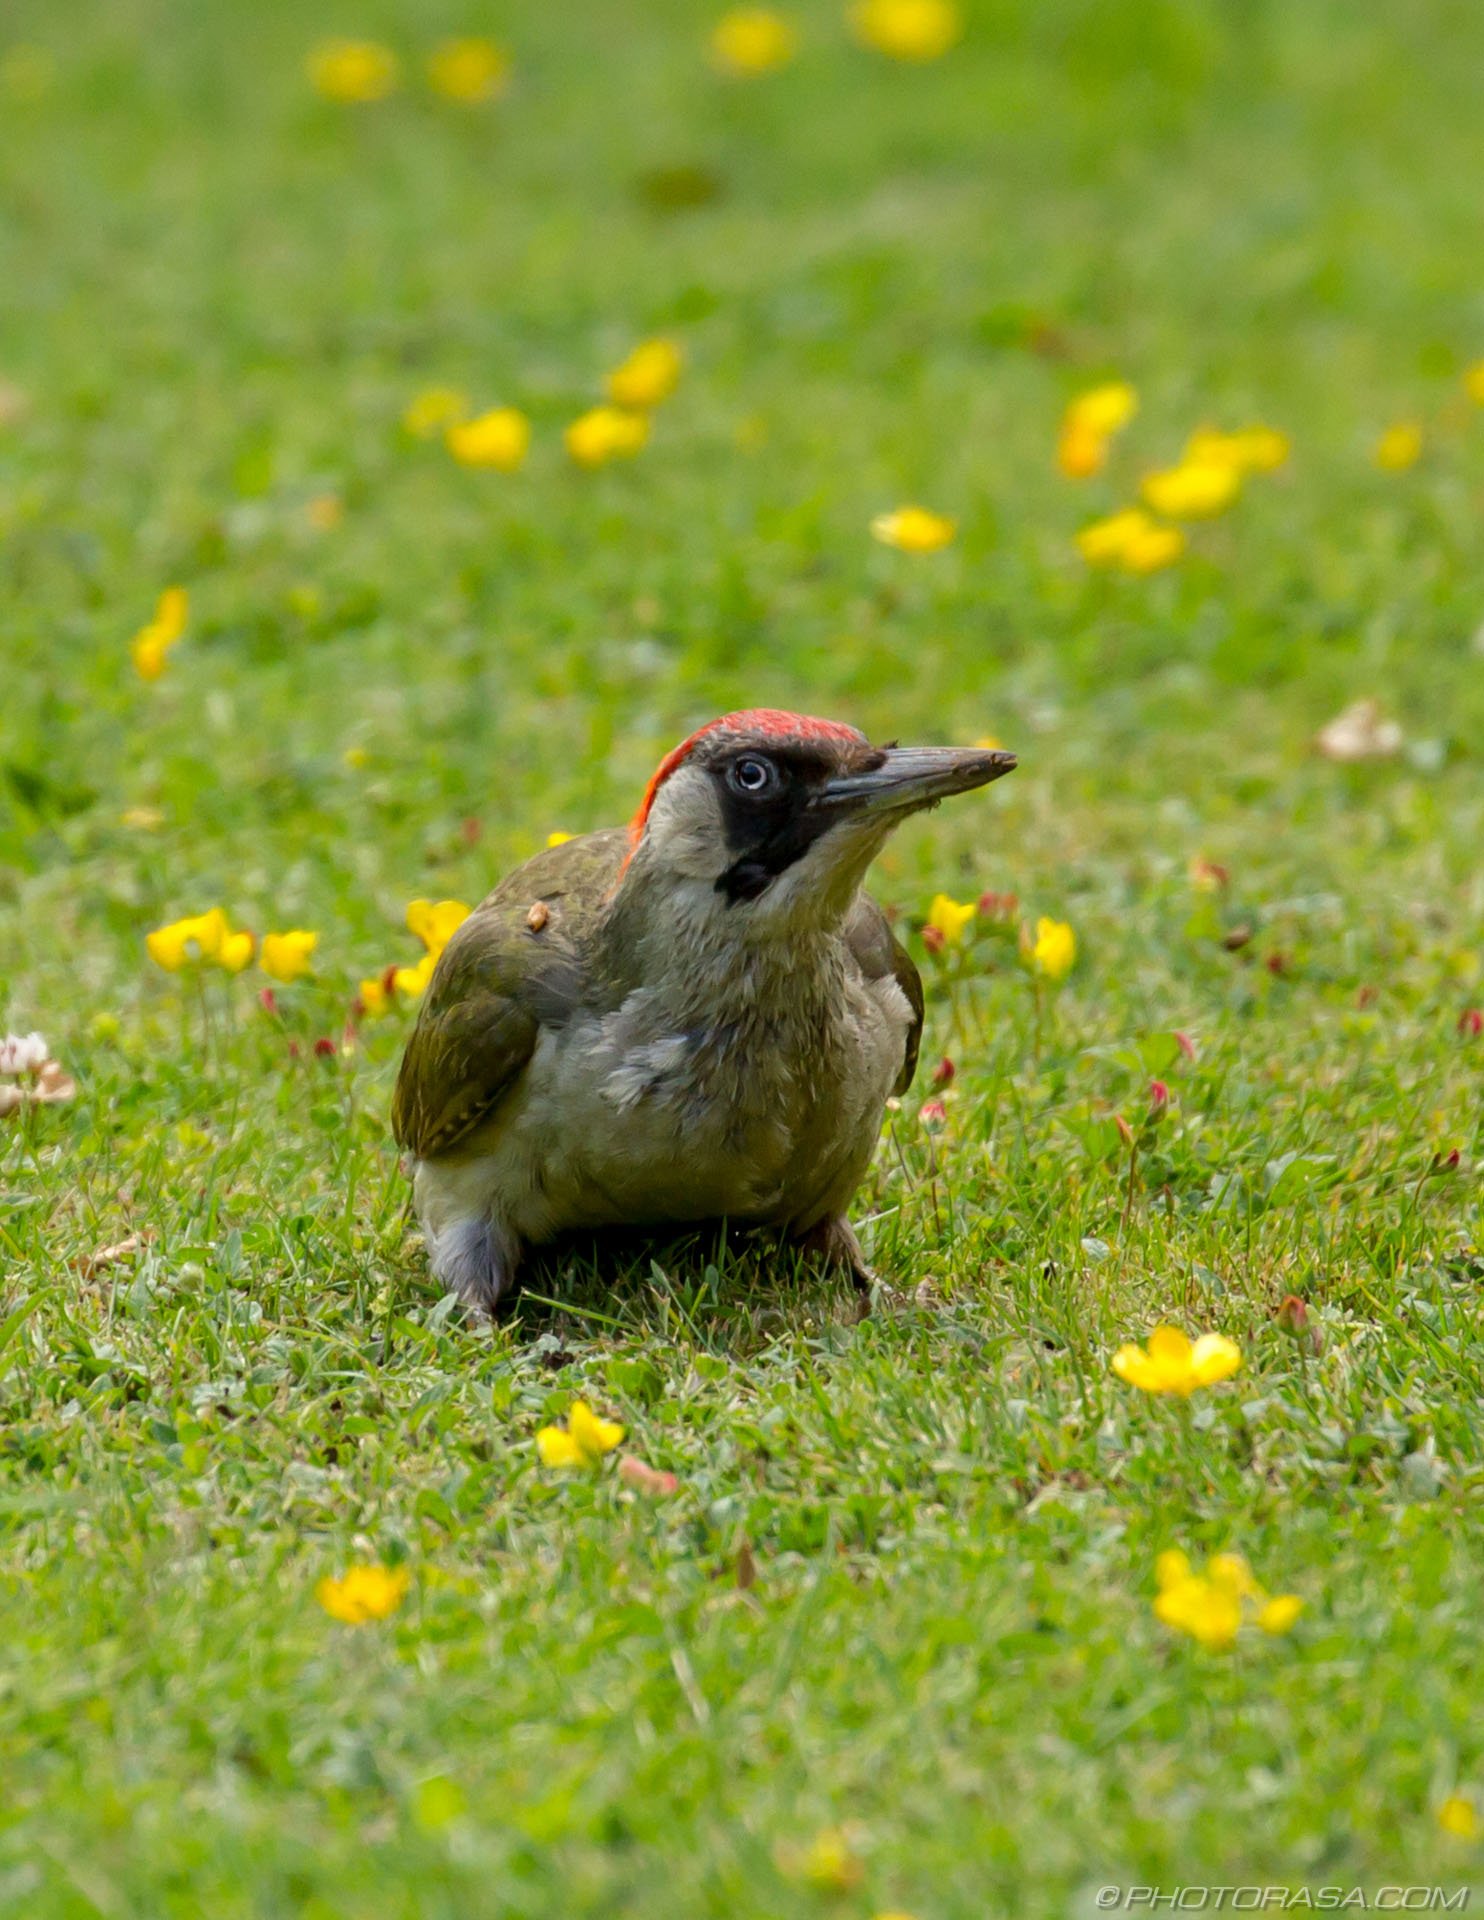 https://photorasa.com/green-woodpecker/woodpecker-looking-up/